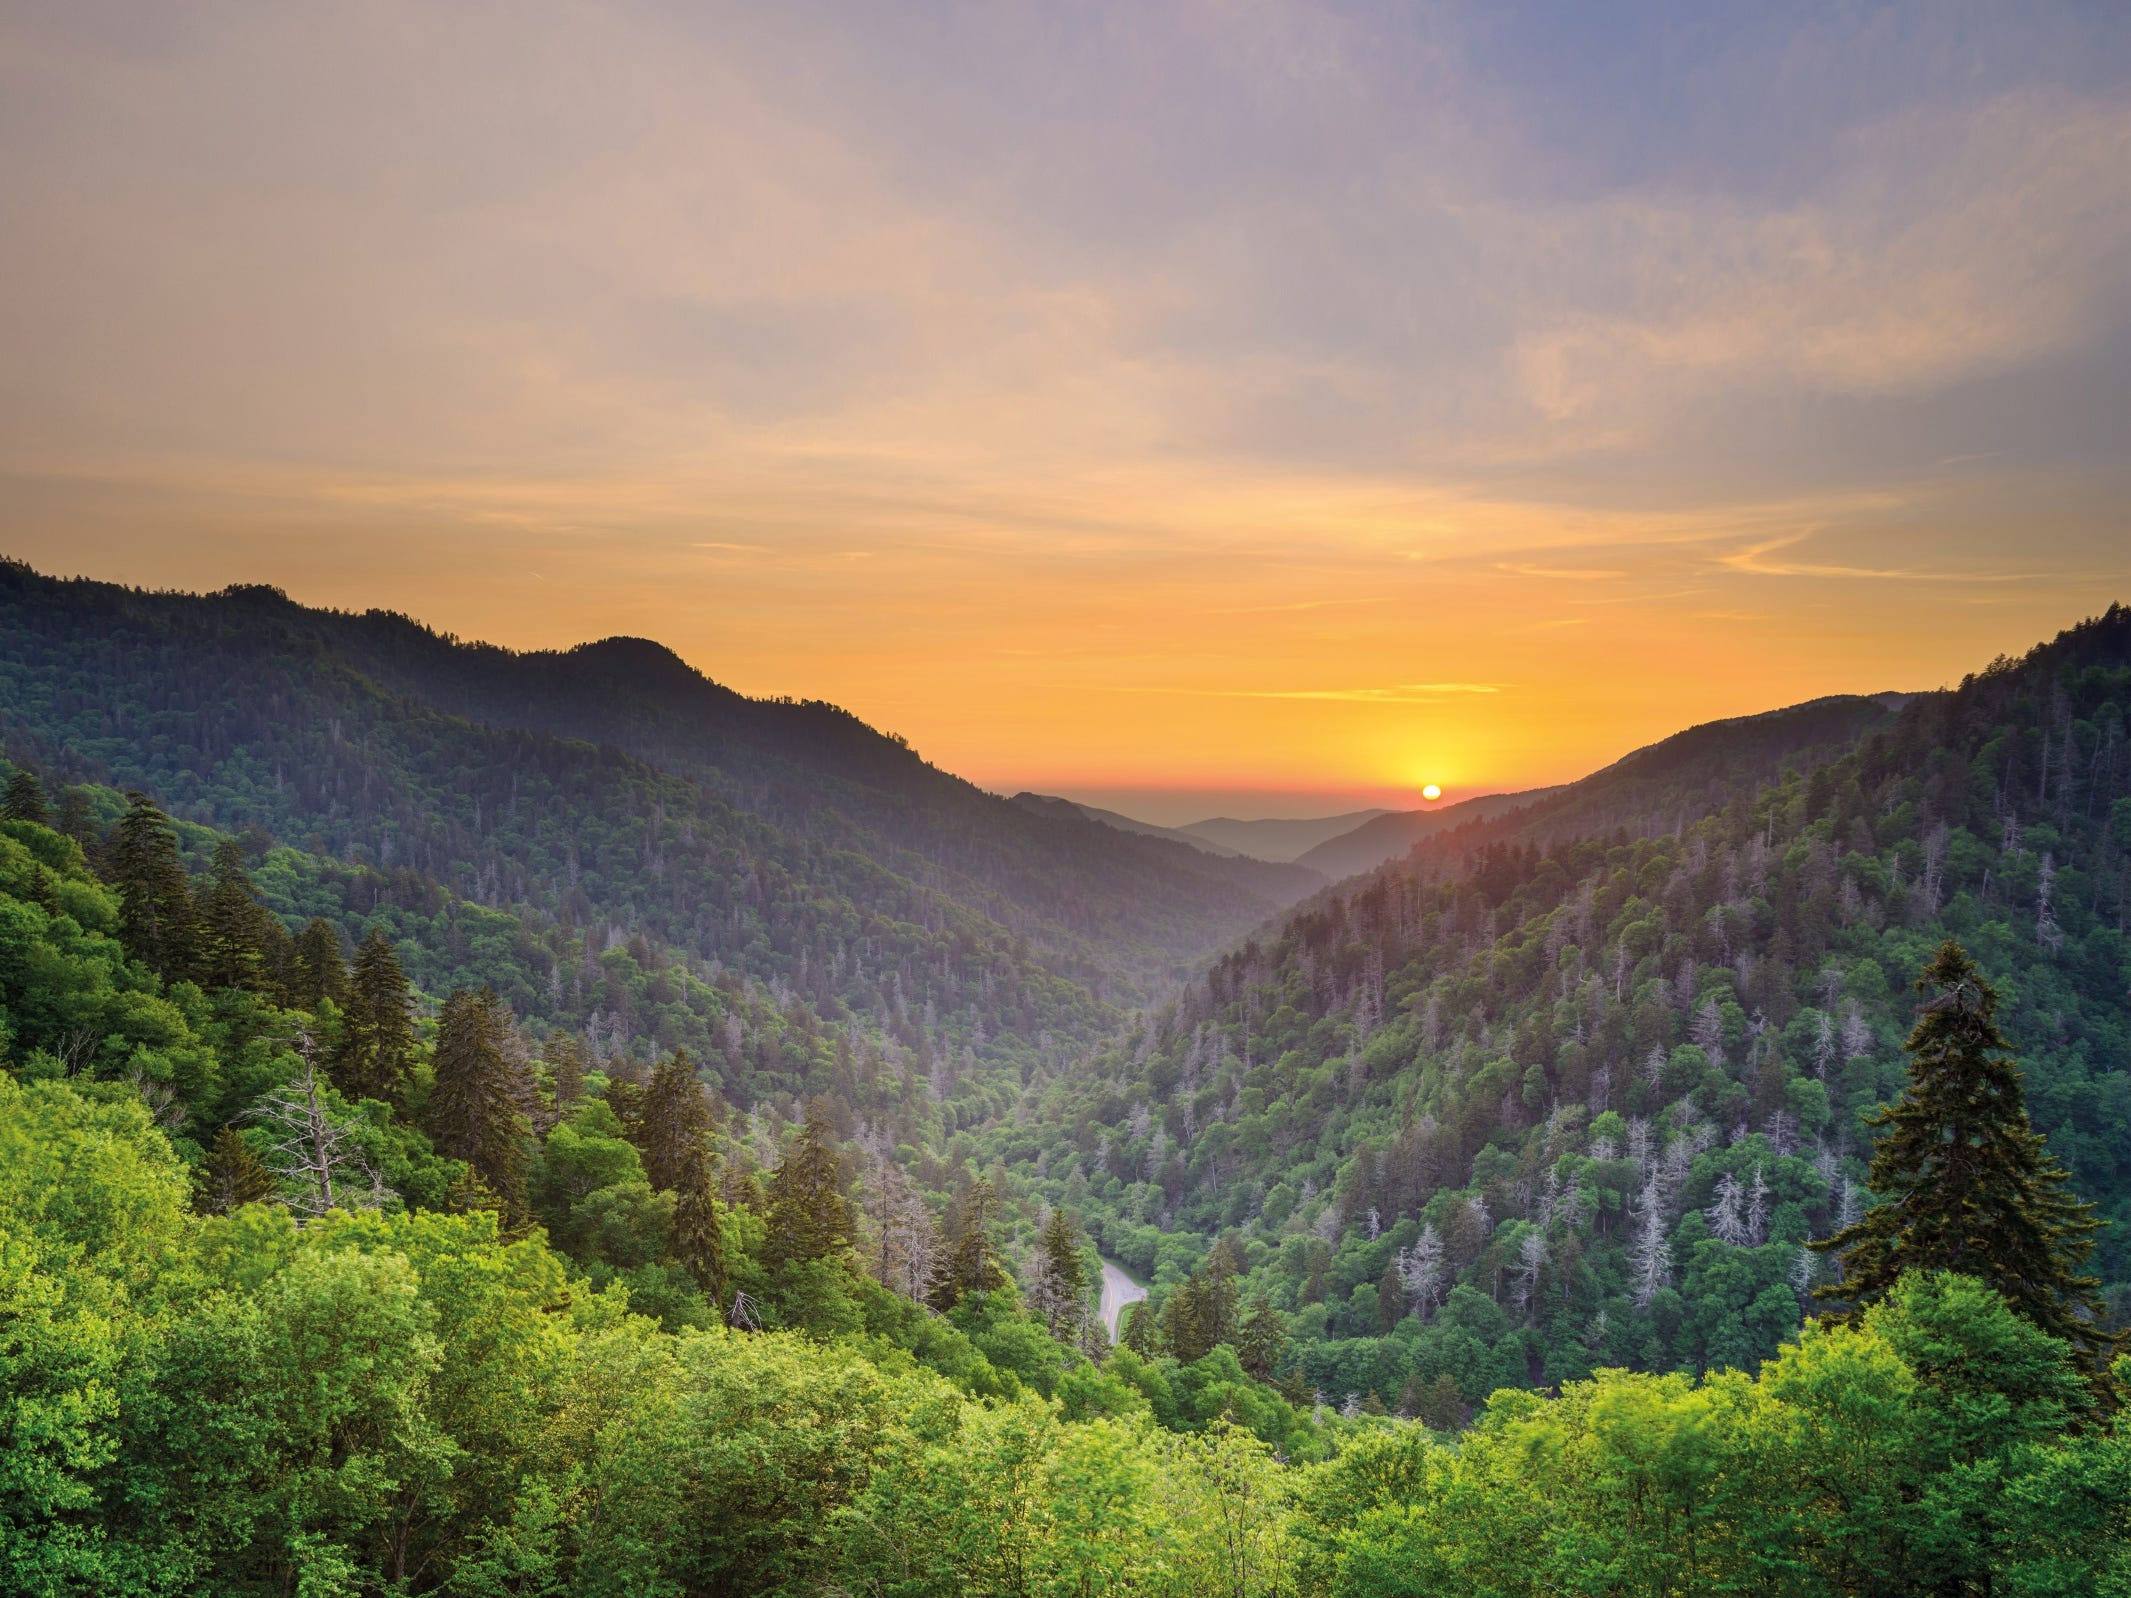 No. 3 on the list of best value places to visit in 2019 is Great Smoky Mountains National Park.